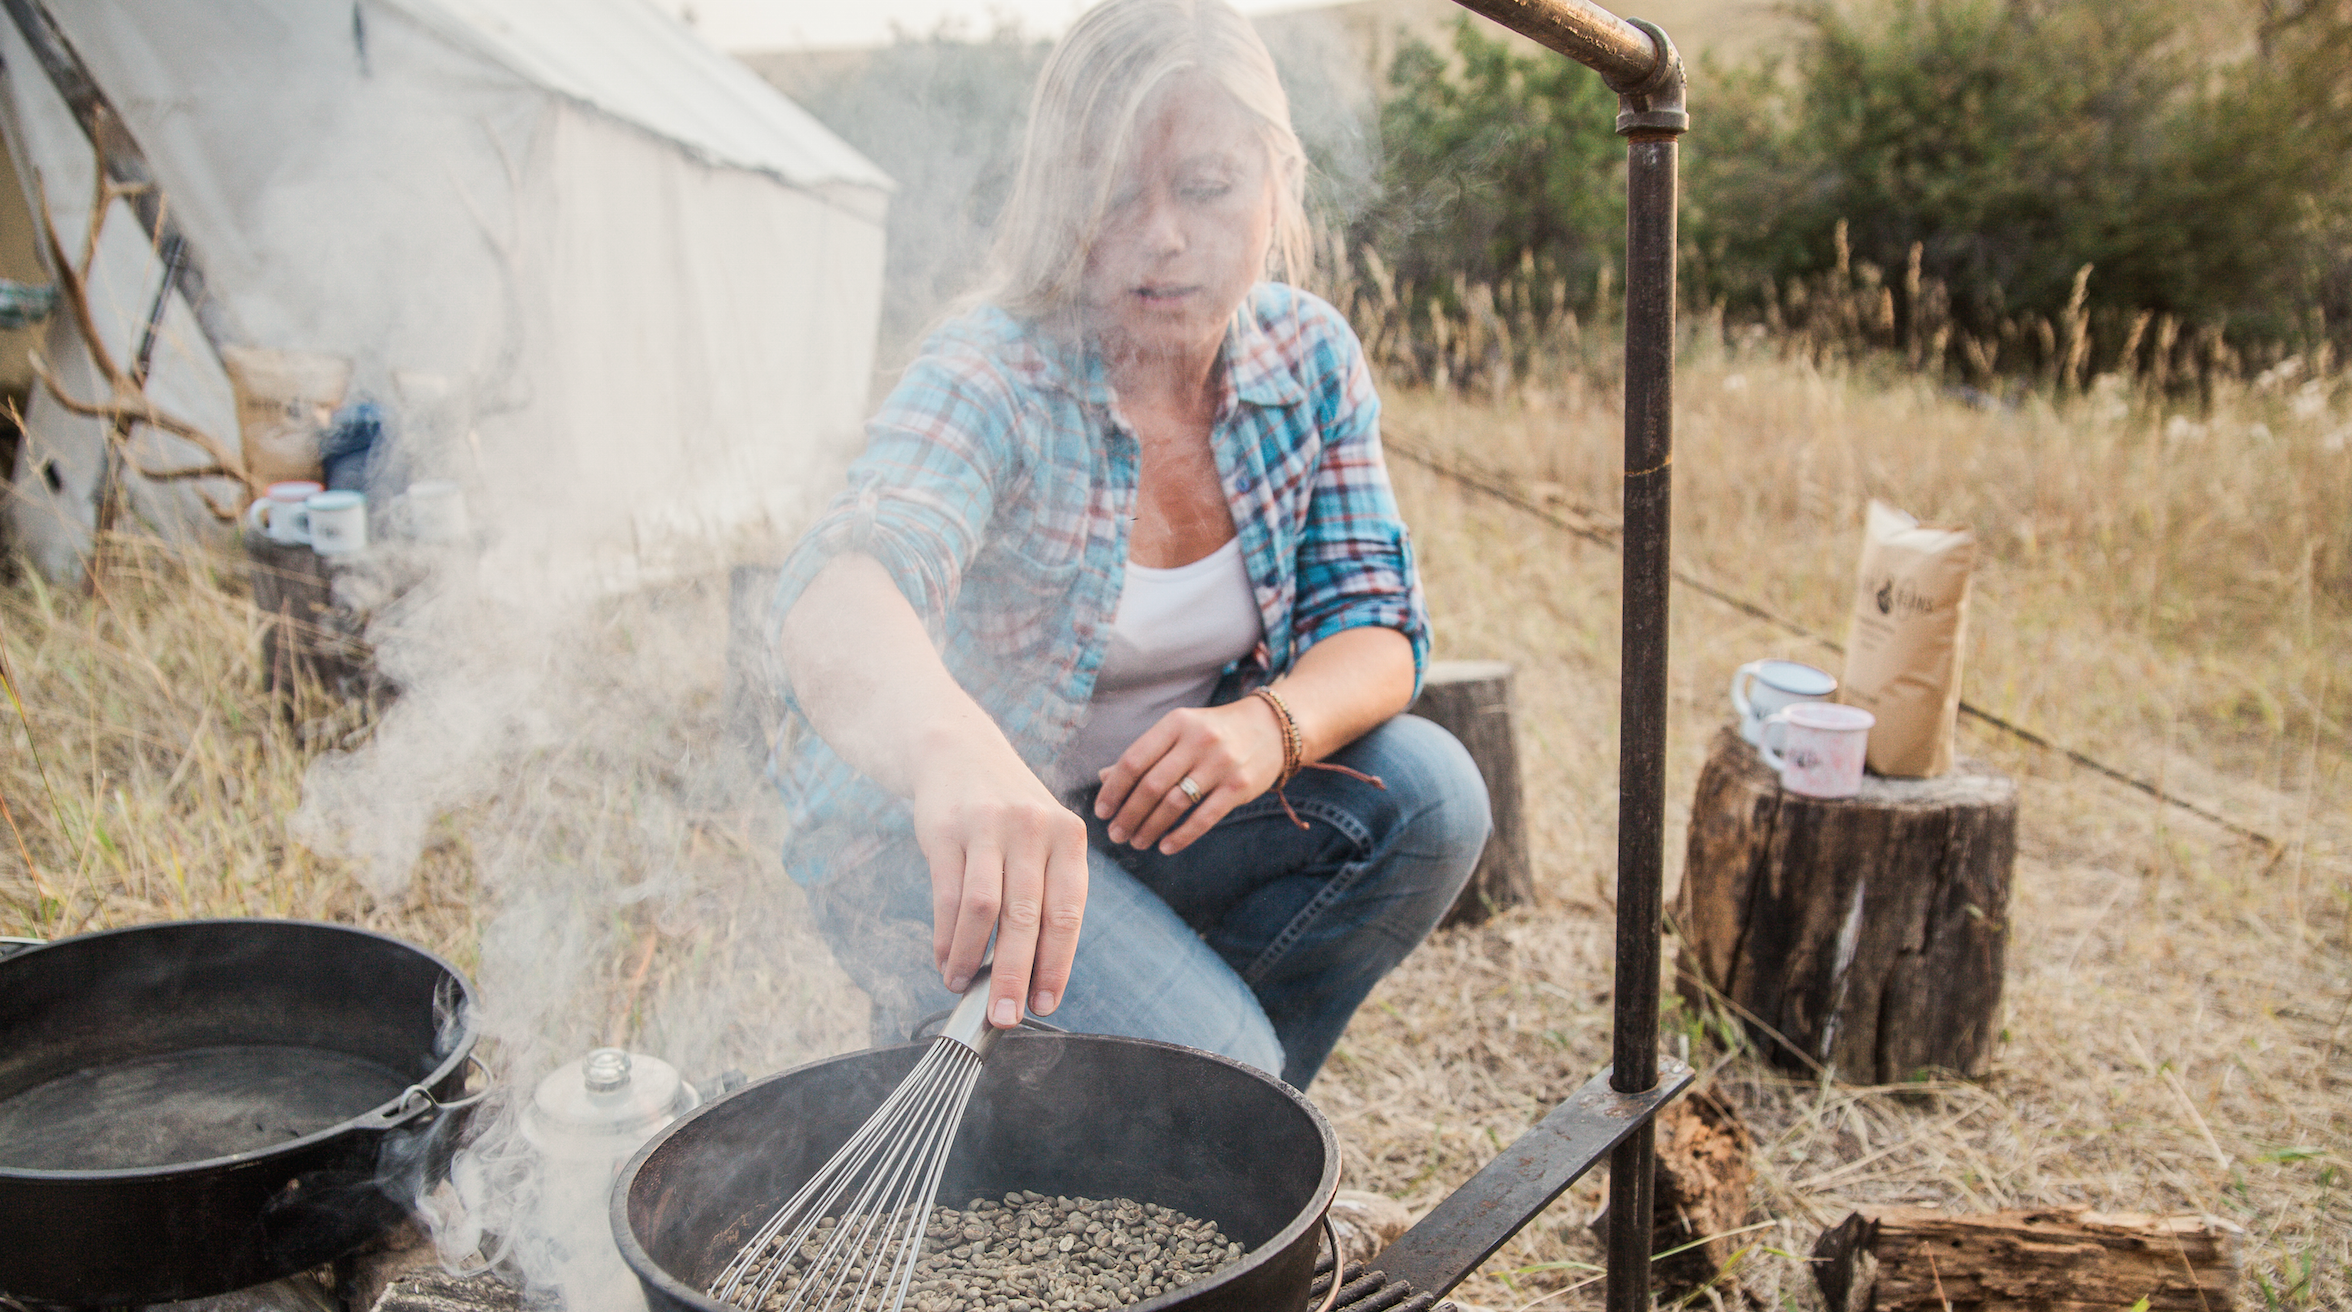 Entrepreneur Angie Caster of Wyo Buckin' Beans by Kerns Photography